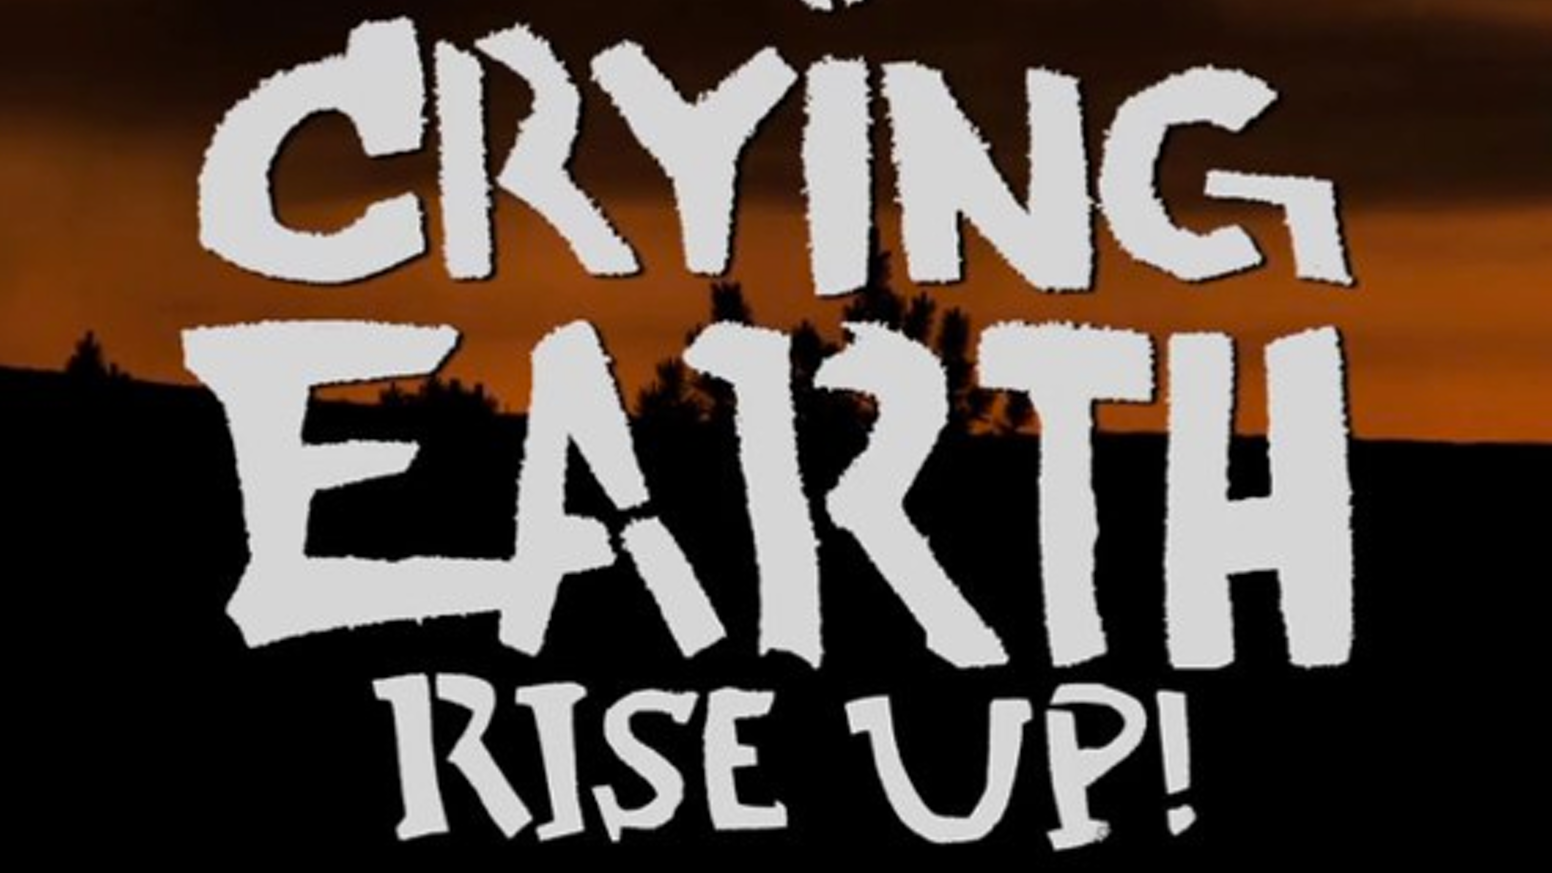 Crying Earth Rise Up! (A documentary work-in-progress)